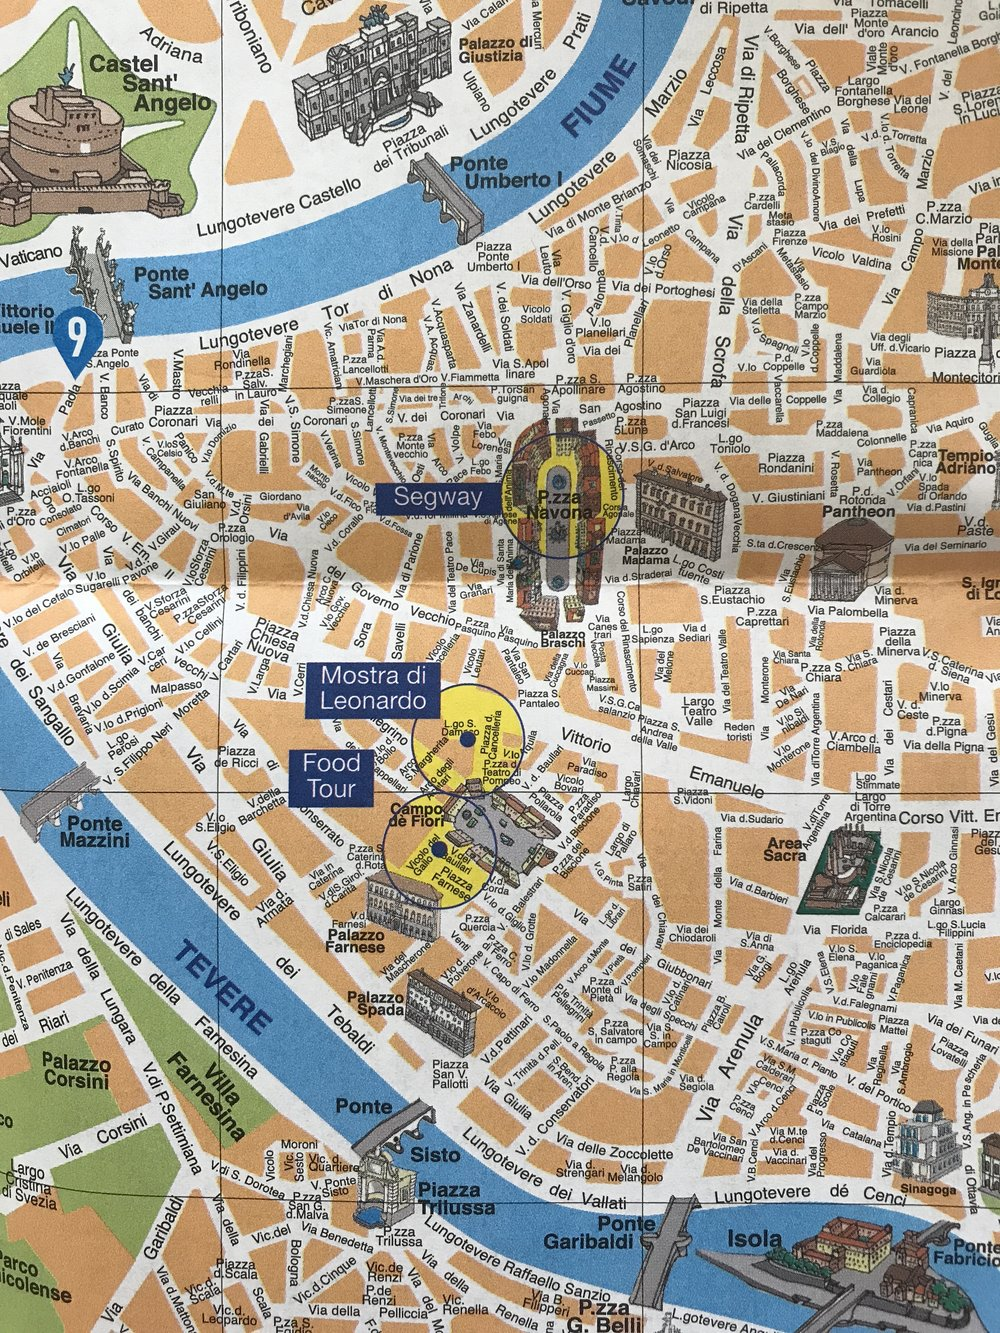 A tourist map of Rome with the streets and noteworthy attractions